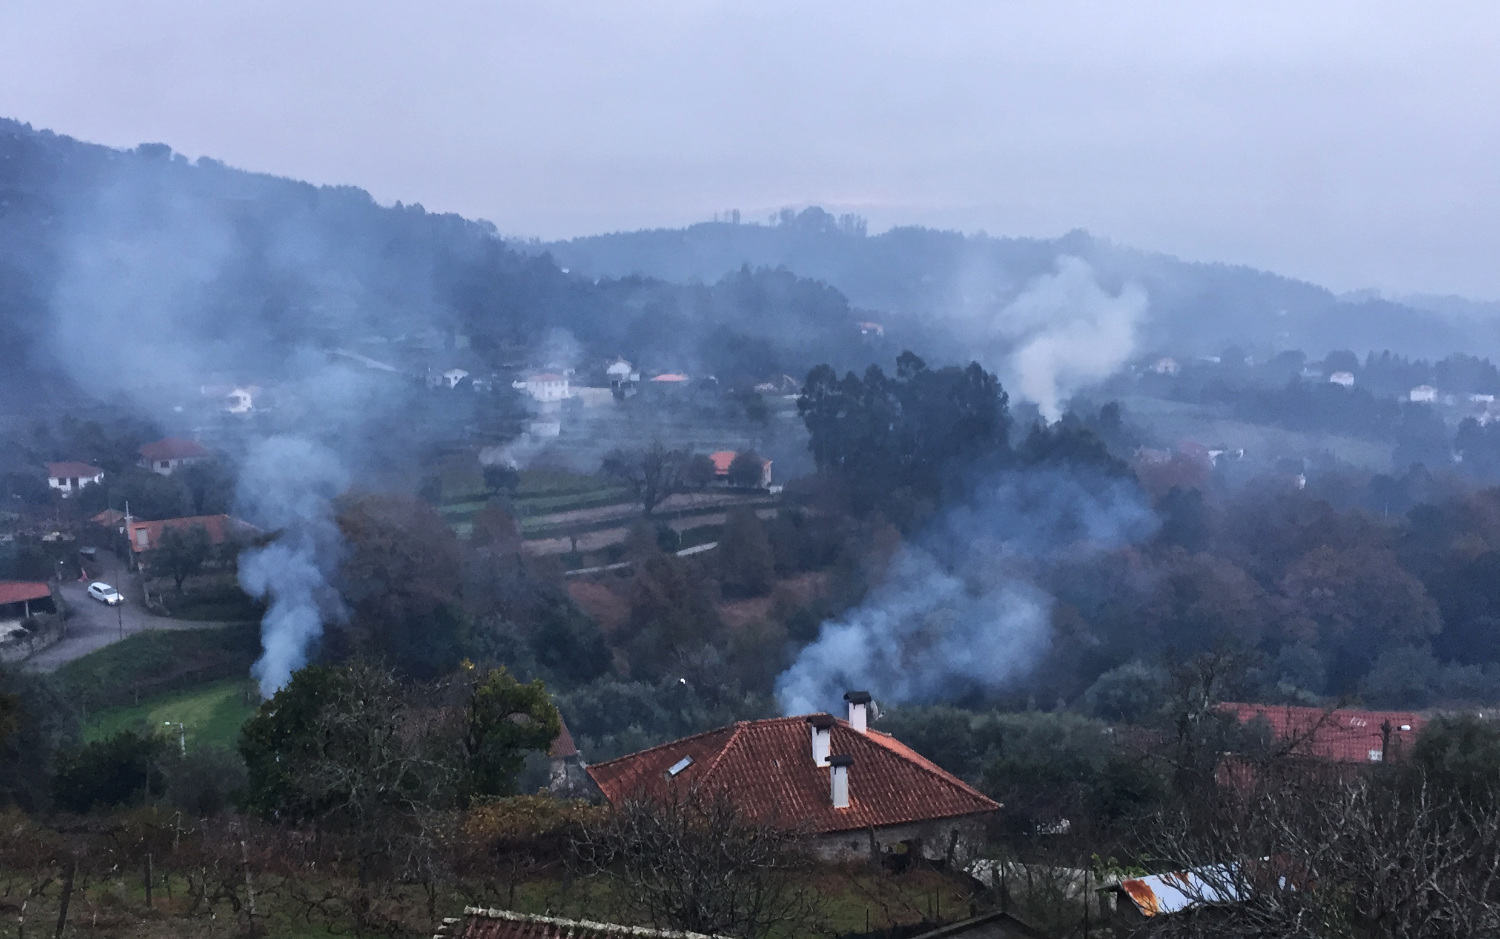 Smoke rises from the village of Esmorigo as people clear up after the harvest.